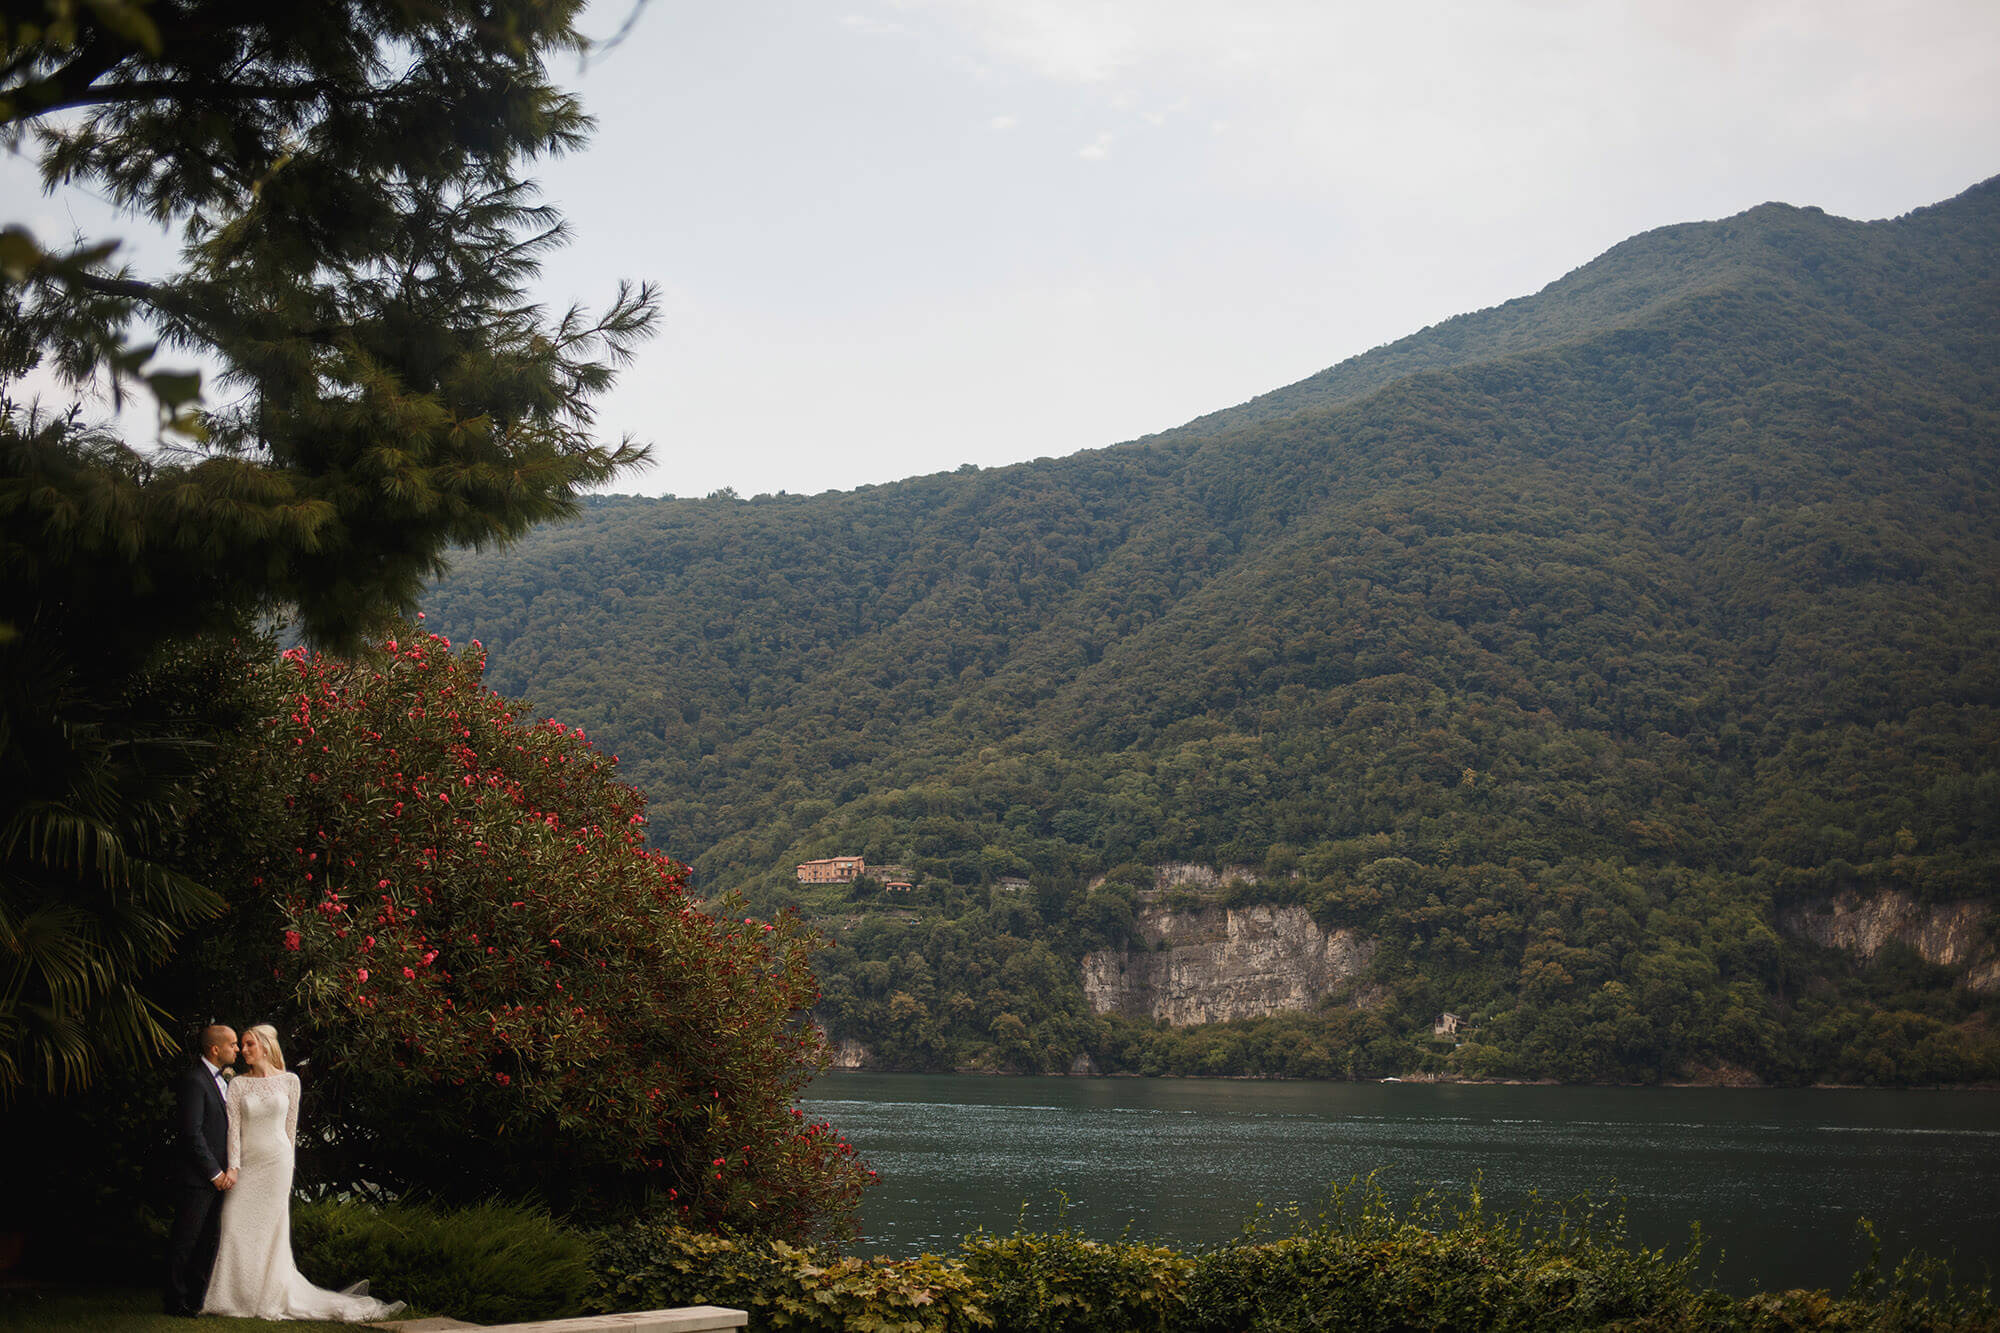 Lake Como perfect for wedding photos